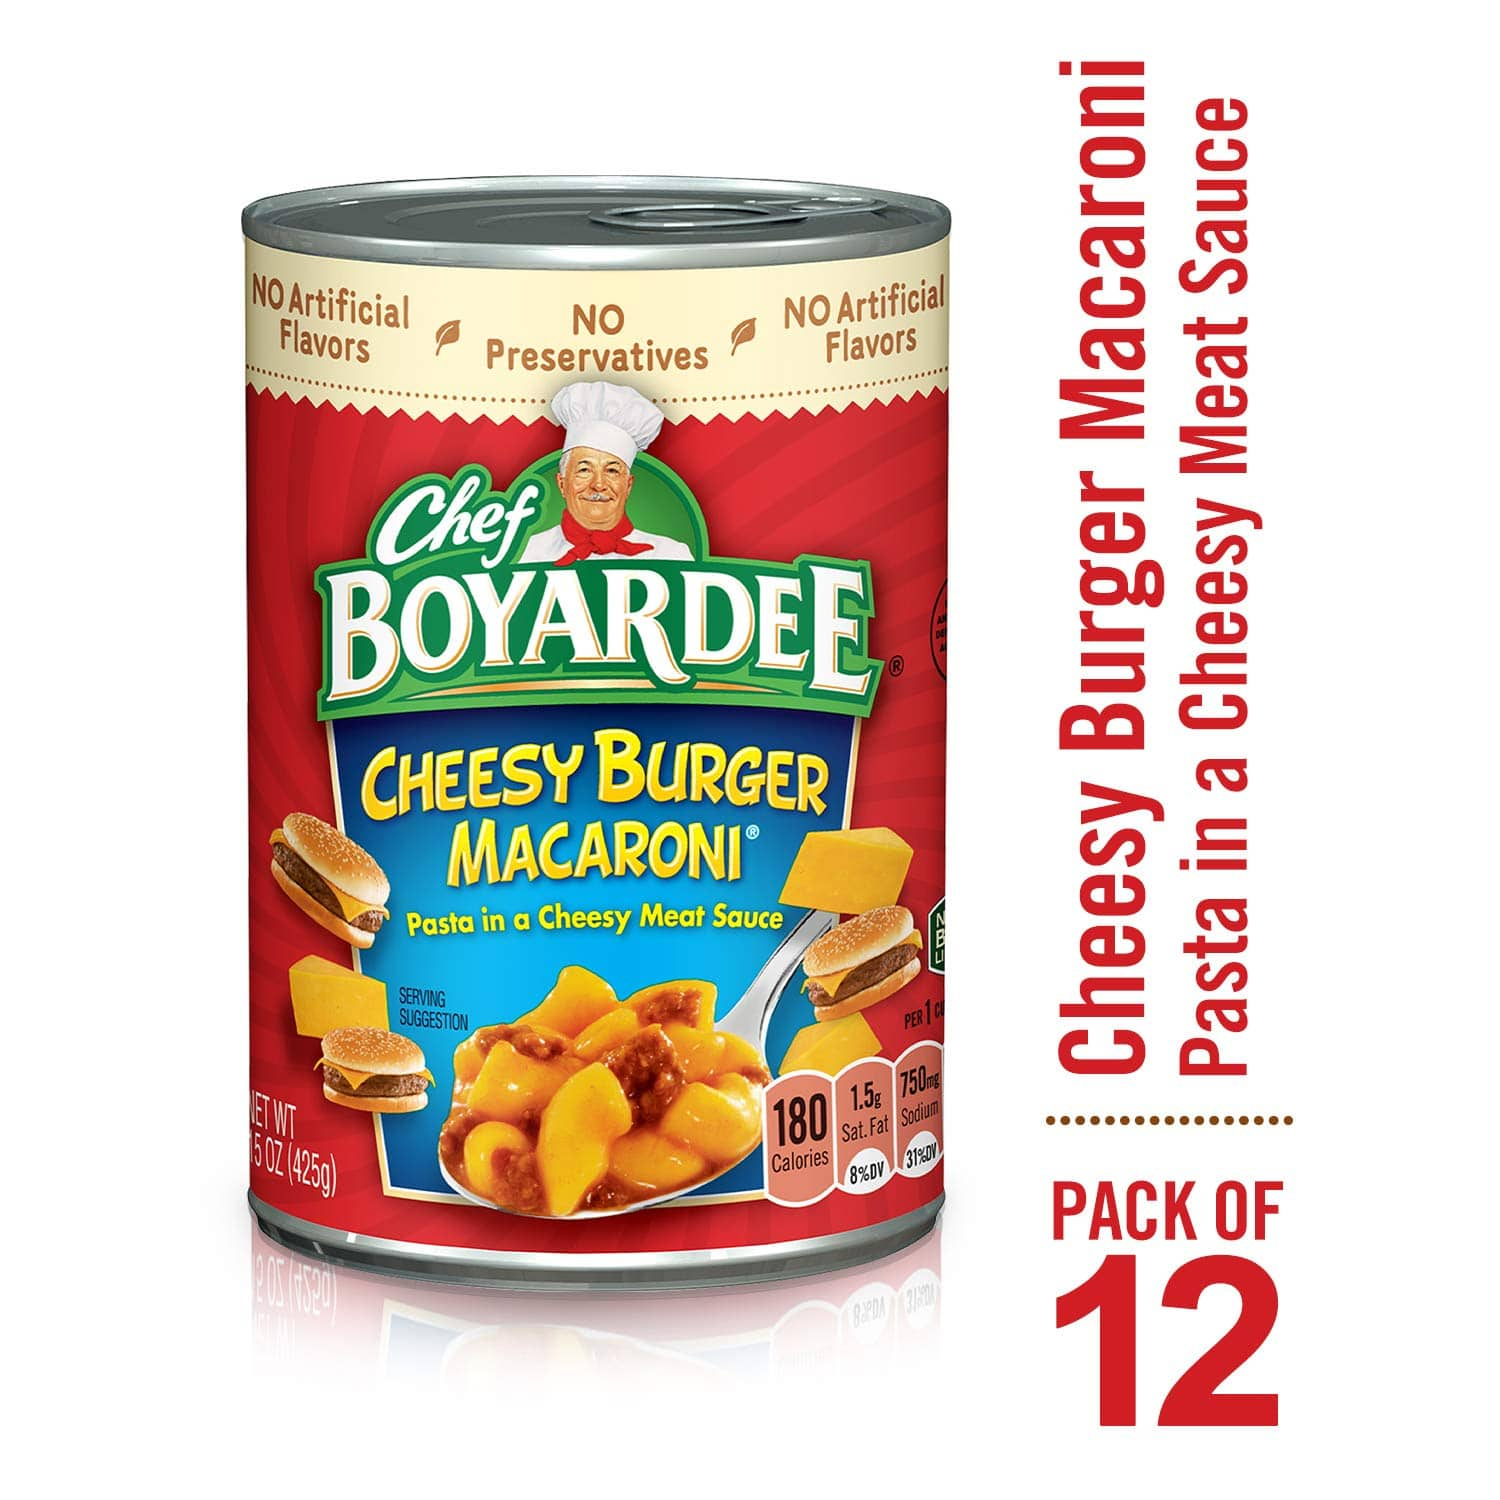 Chef Boyardee Cheesy Burger Macaroni, 15 oz, 12 Pack- $11.17 at Amazon + FS with Prime (or less with subscribe and save)